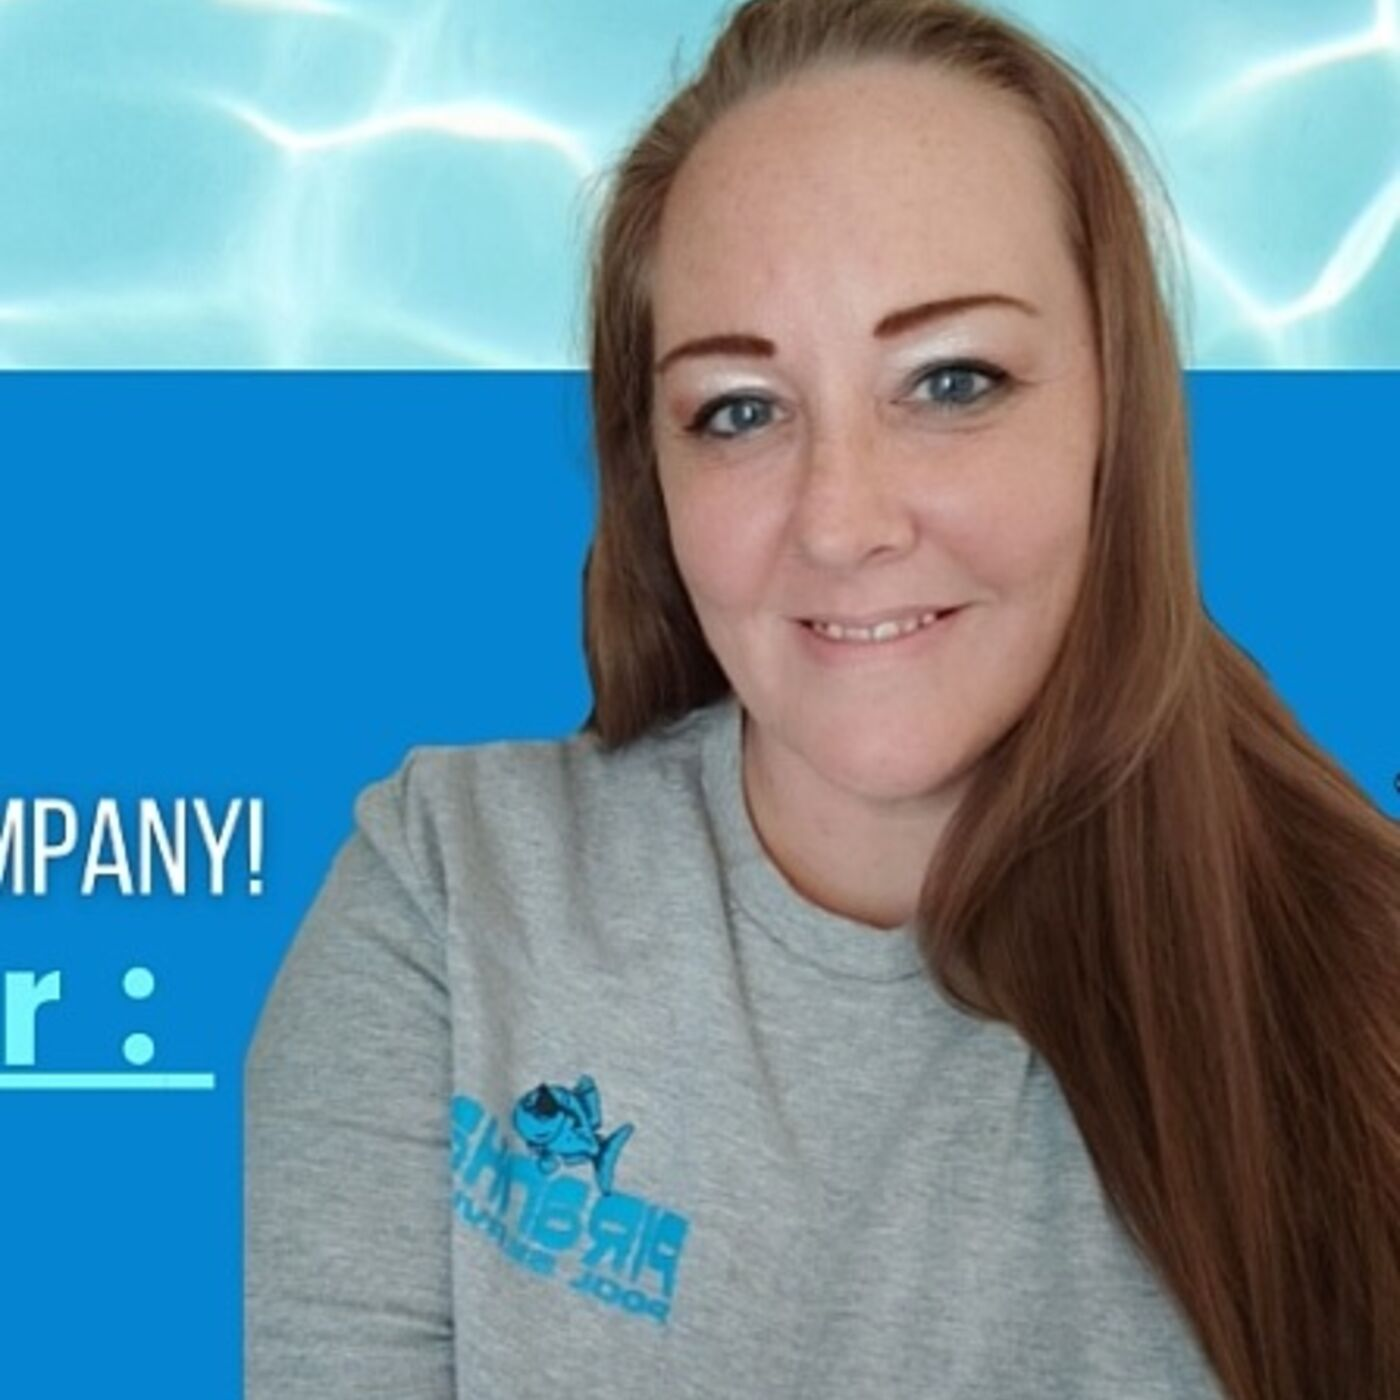 Let's Talk About Starting A New Pool Service Company!